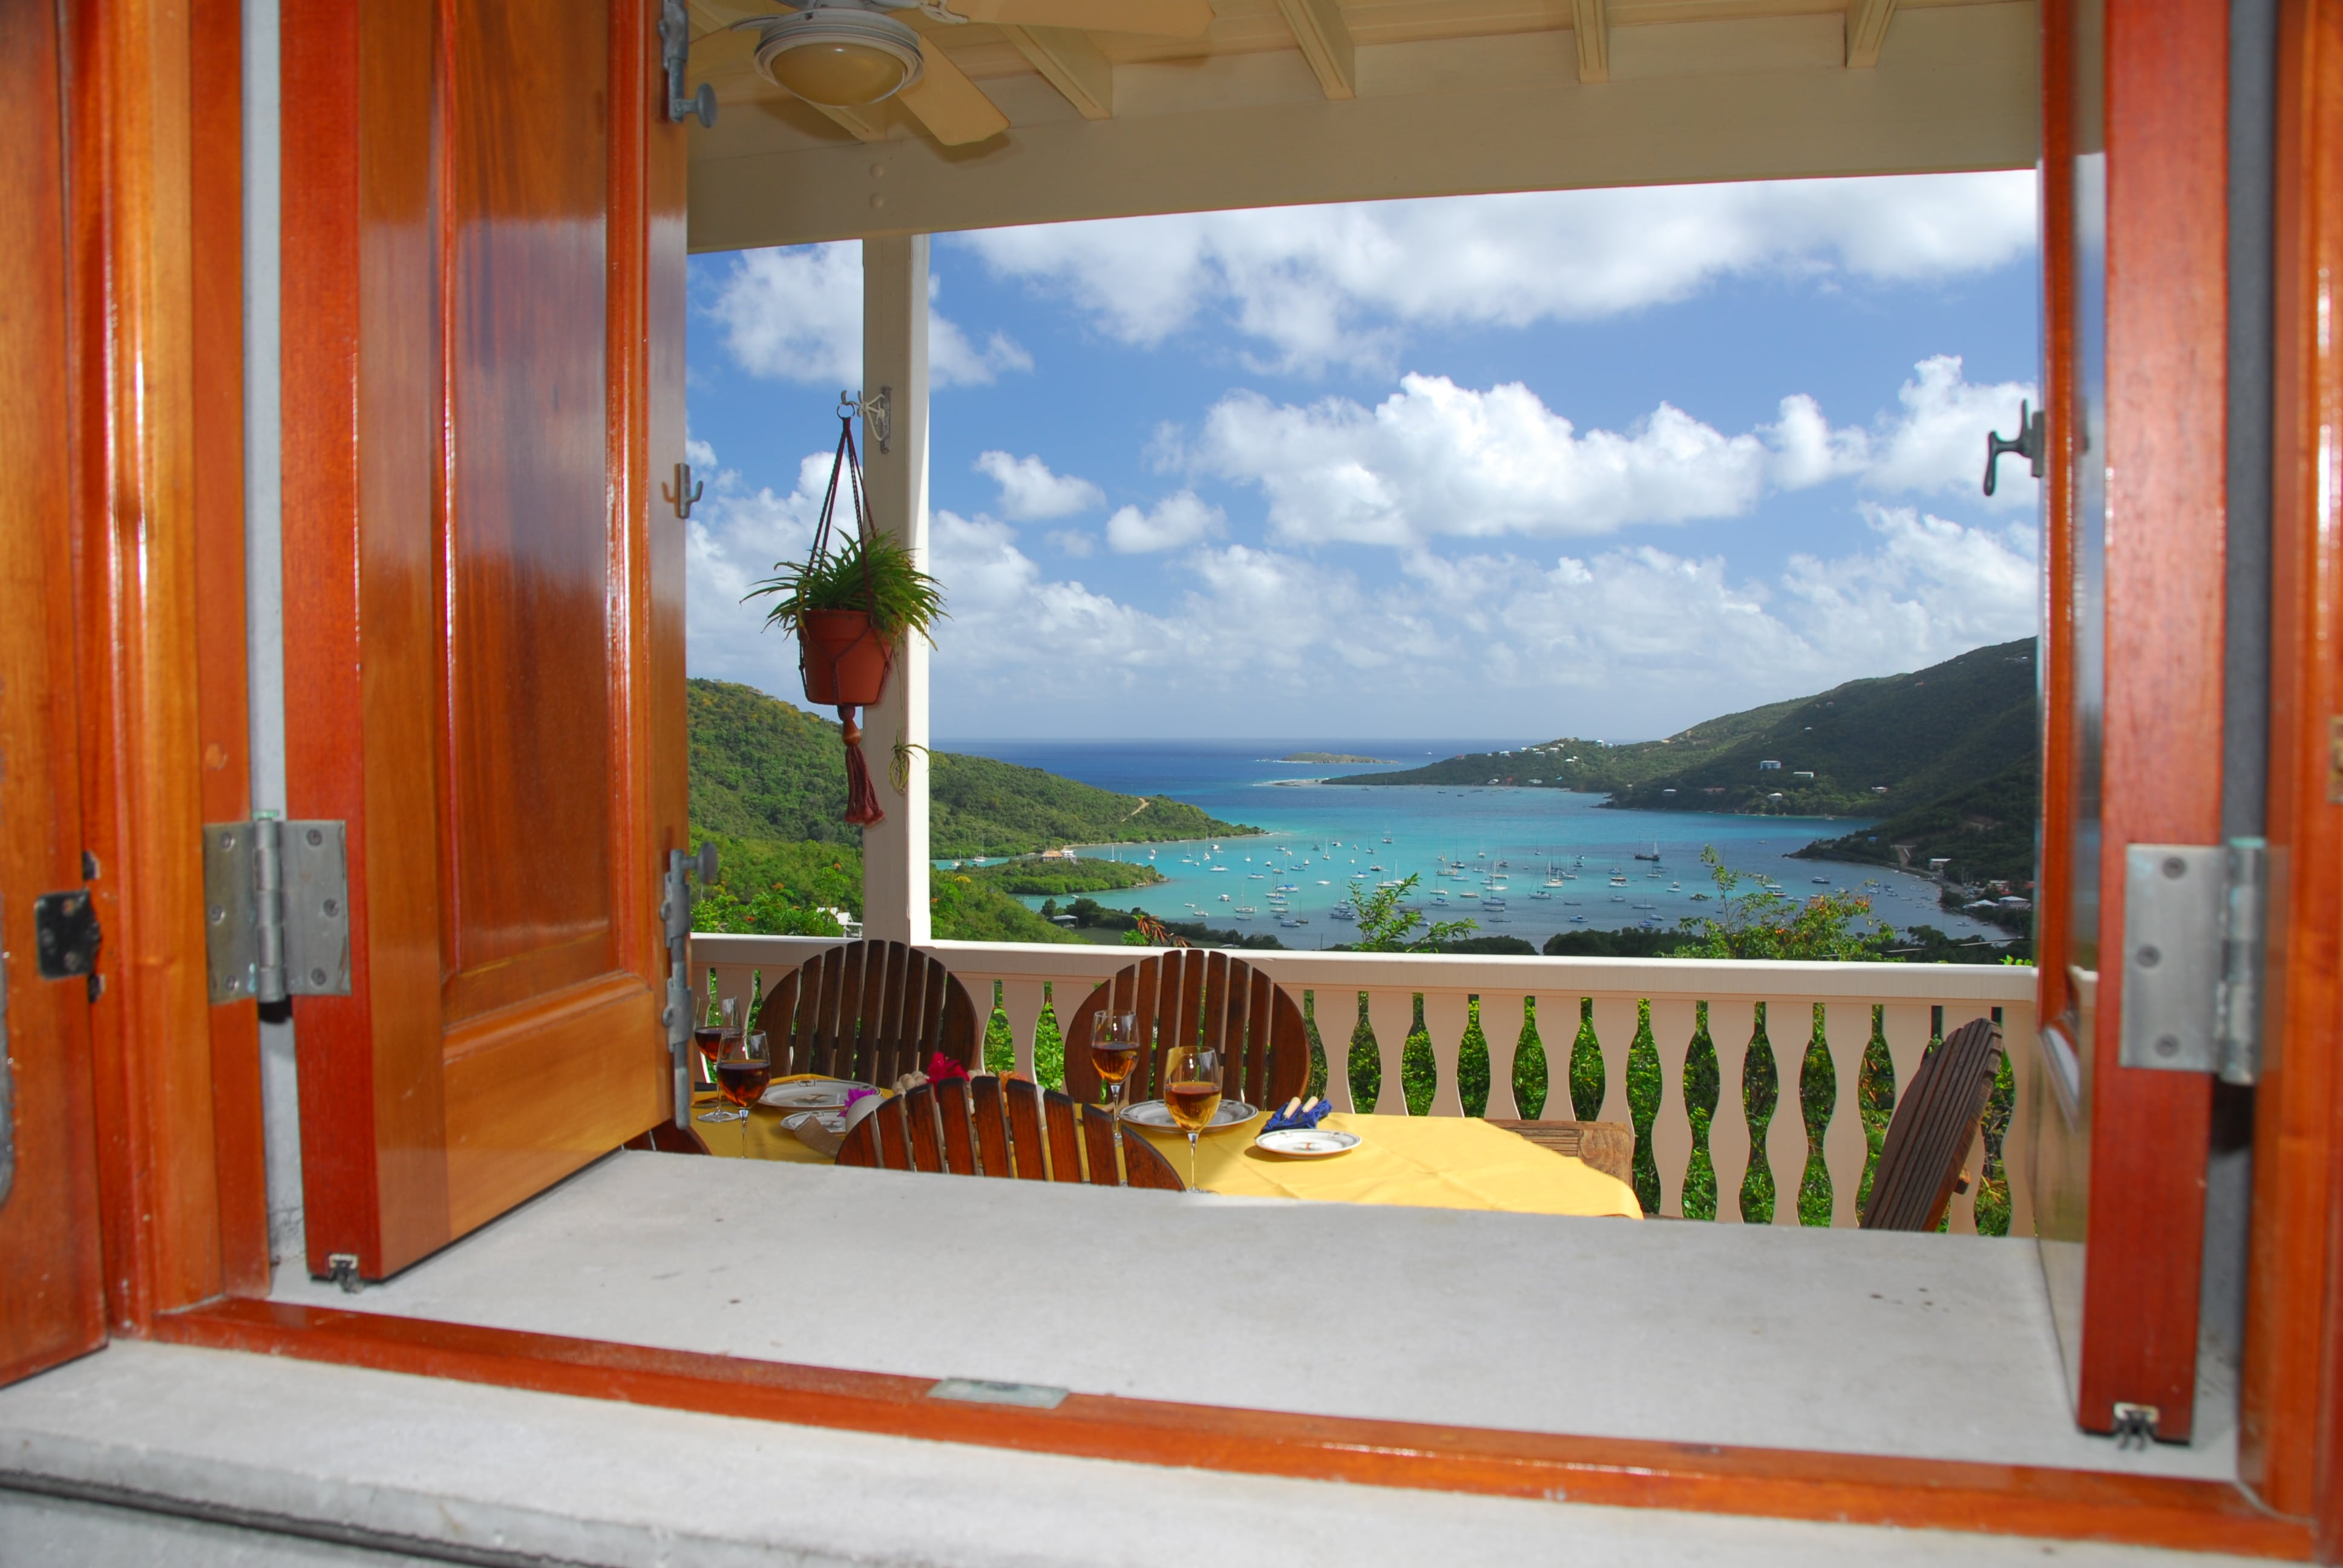 Explore St. John with Fun and Adventure